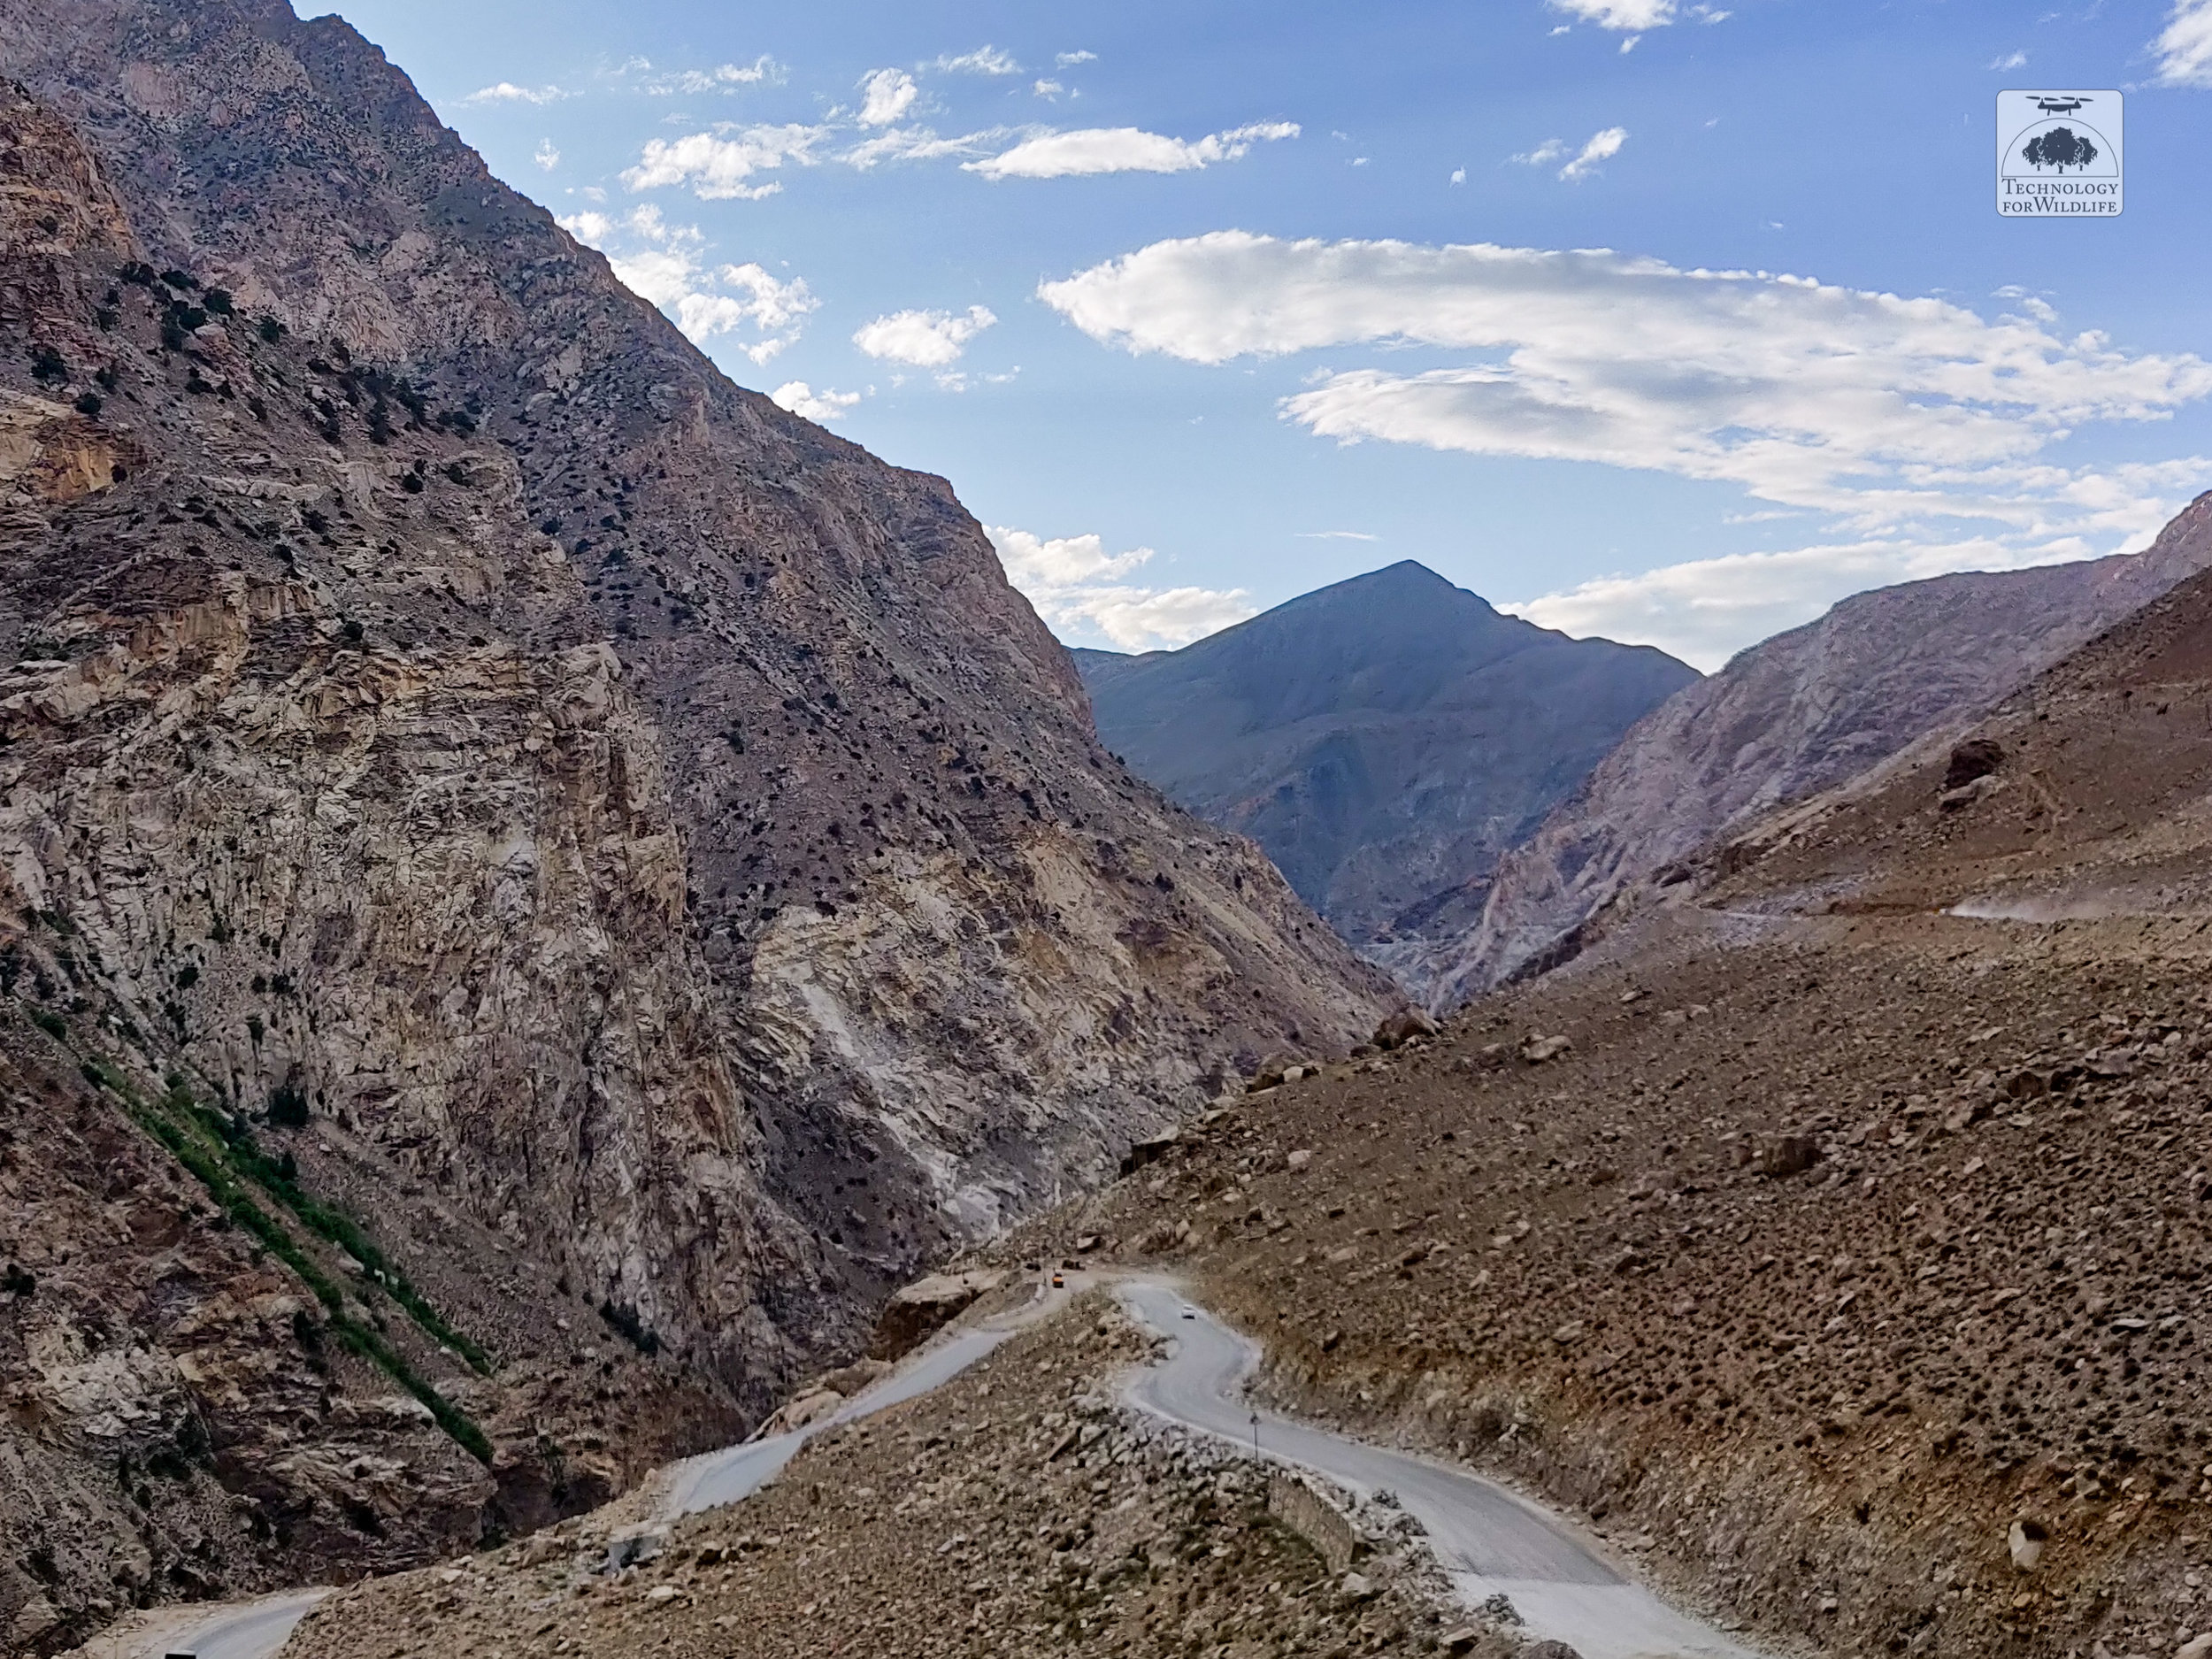 The road connecting Kinnaur to Spiti. Photograph: Shashank Srinivasan | 2019